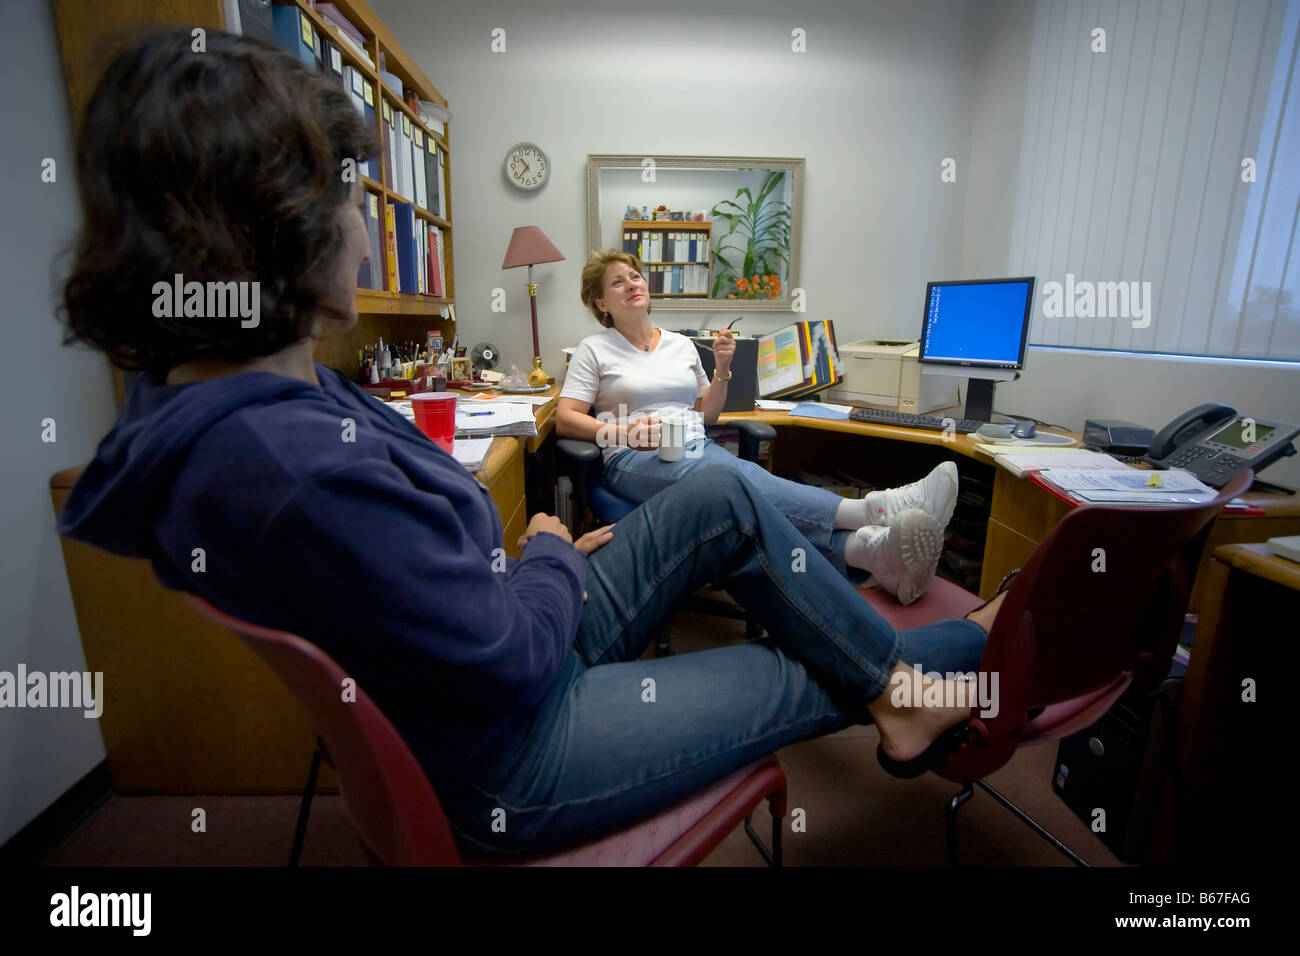 iranian professor at saddleback college relaxing at office in